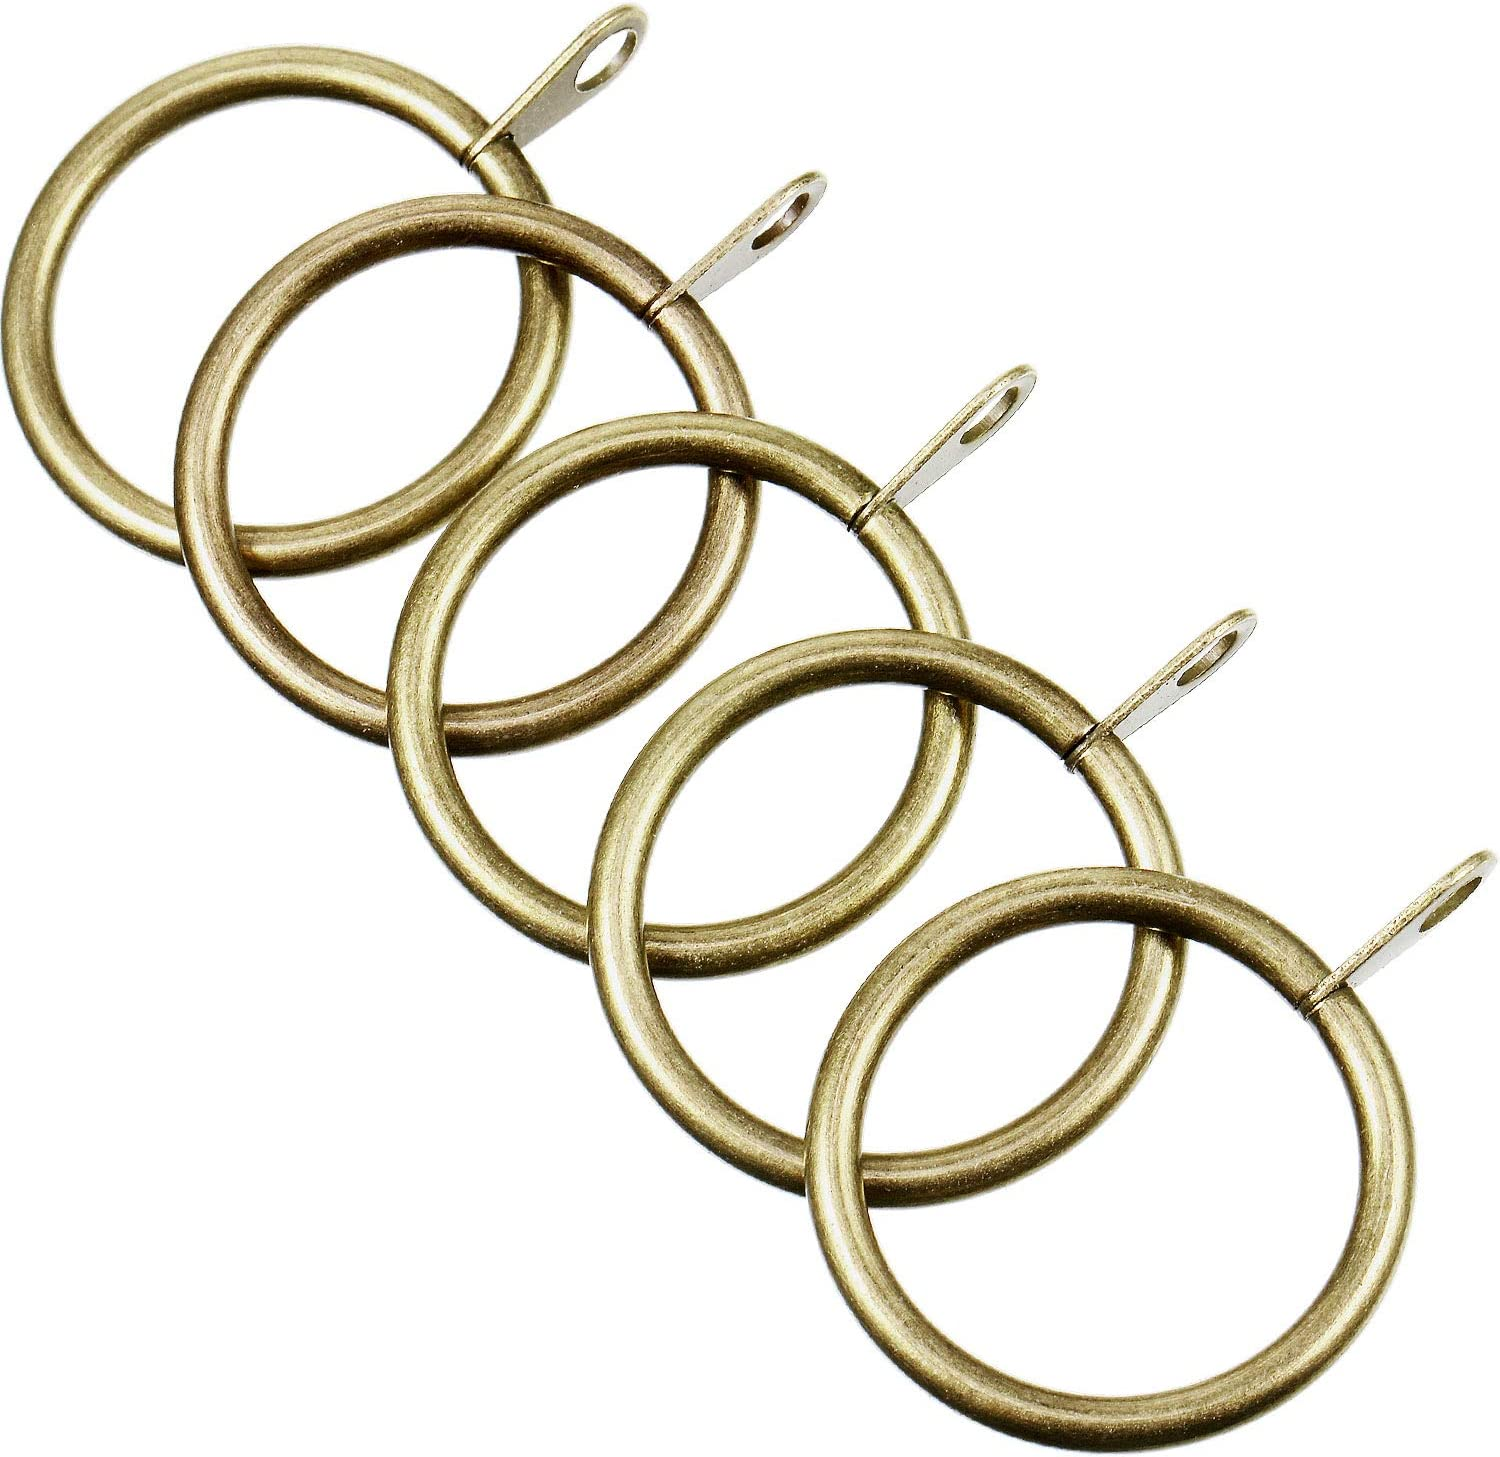 Shappy Metal Drapery Curtain Rings Hanging Rings for Curtains and Rods Green Brass, 20 Pack Drape Sliding Eyelet Rings 30 mm Internal Diameter